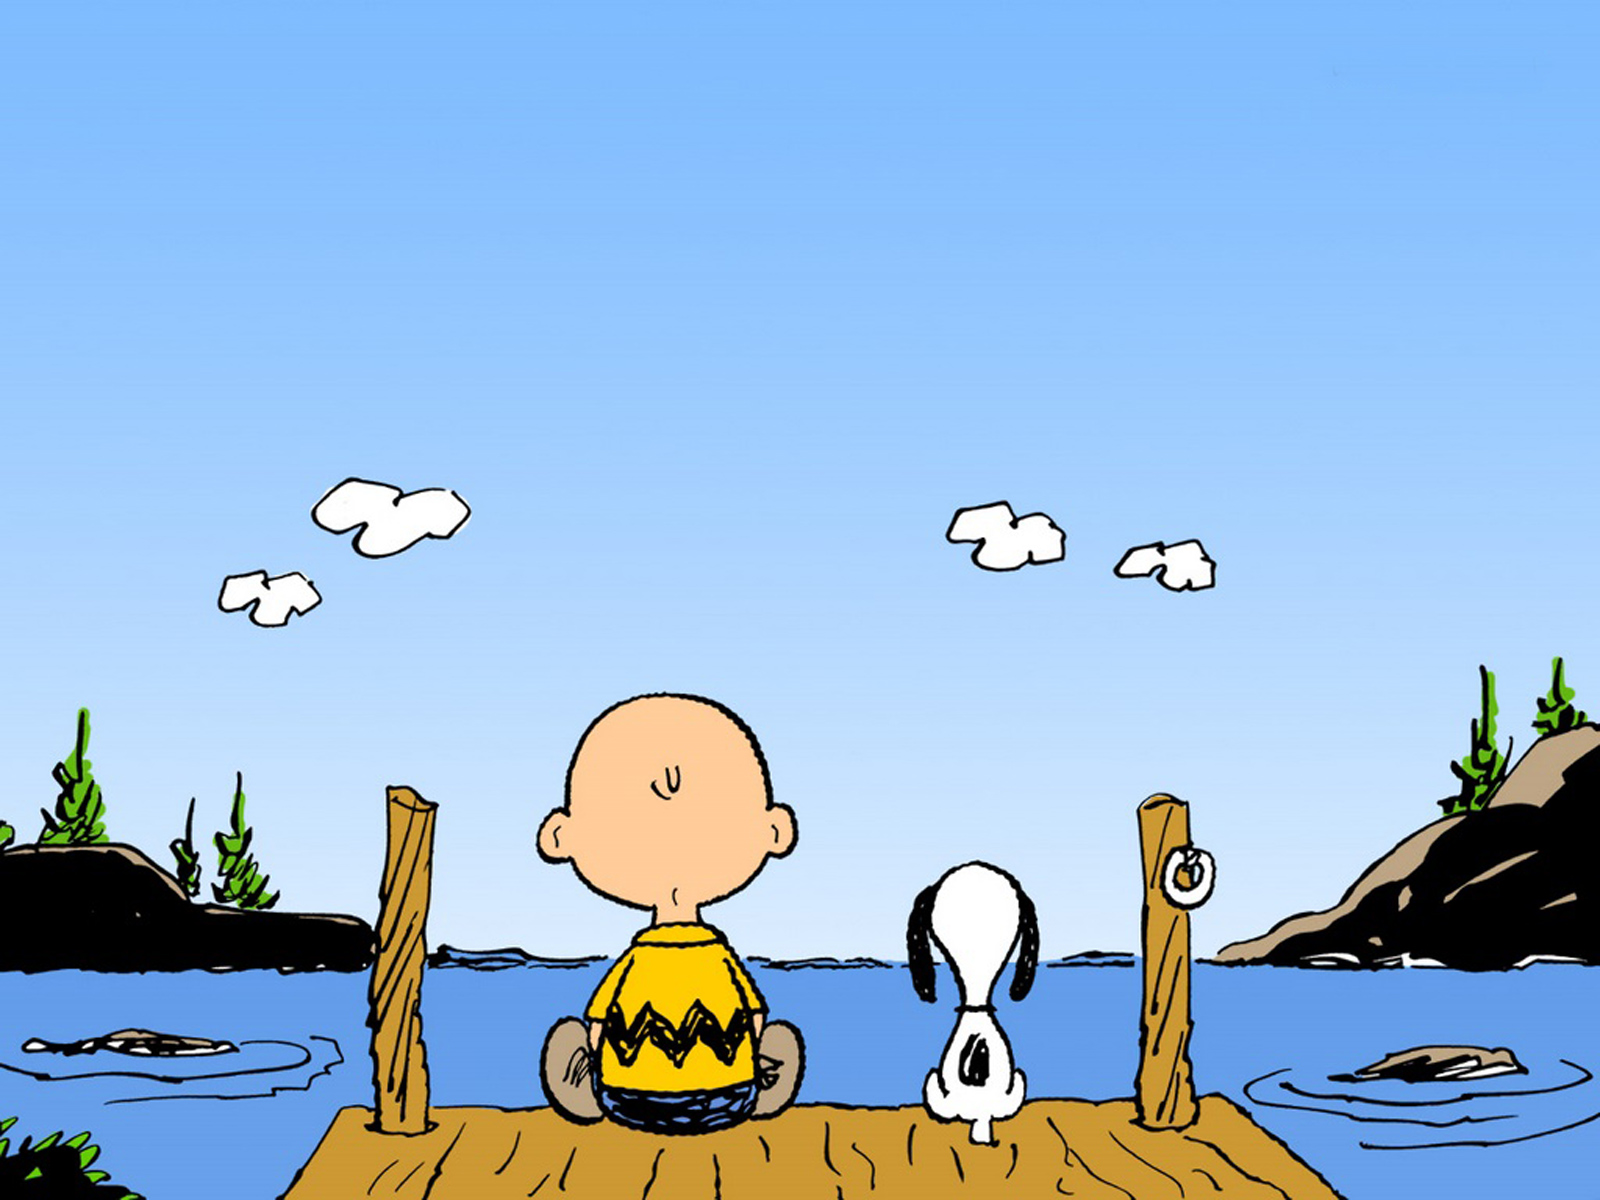 Free Charlie Brown And Snoopy, computer desktop wallpapers, pictures, images